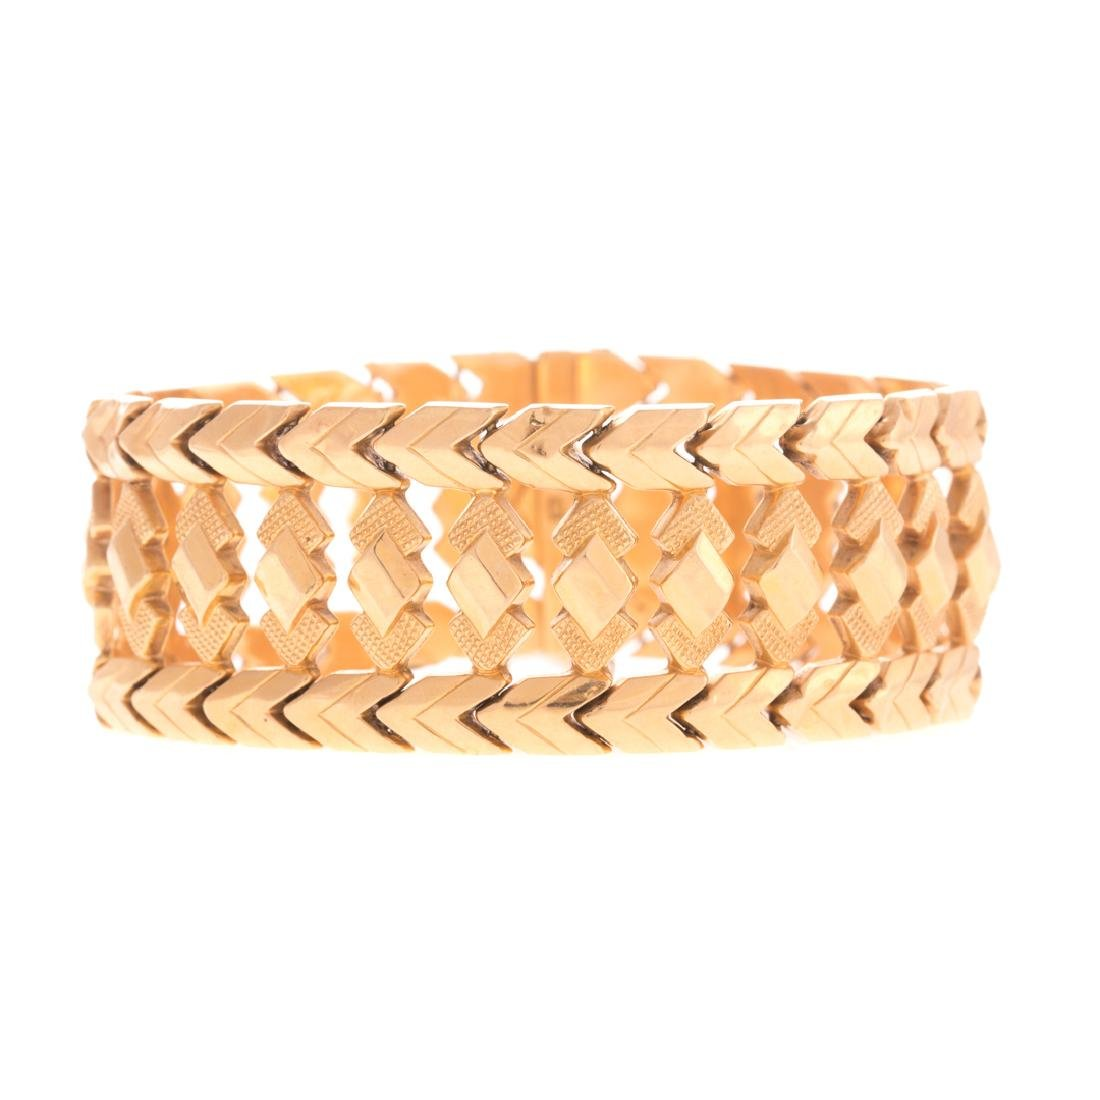 A Lady's Retro Bracelet in 18K Gold